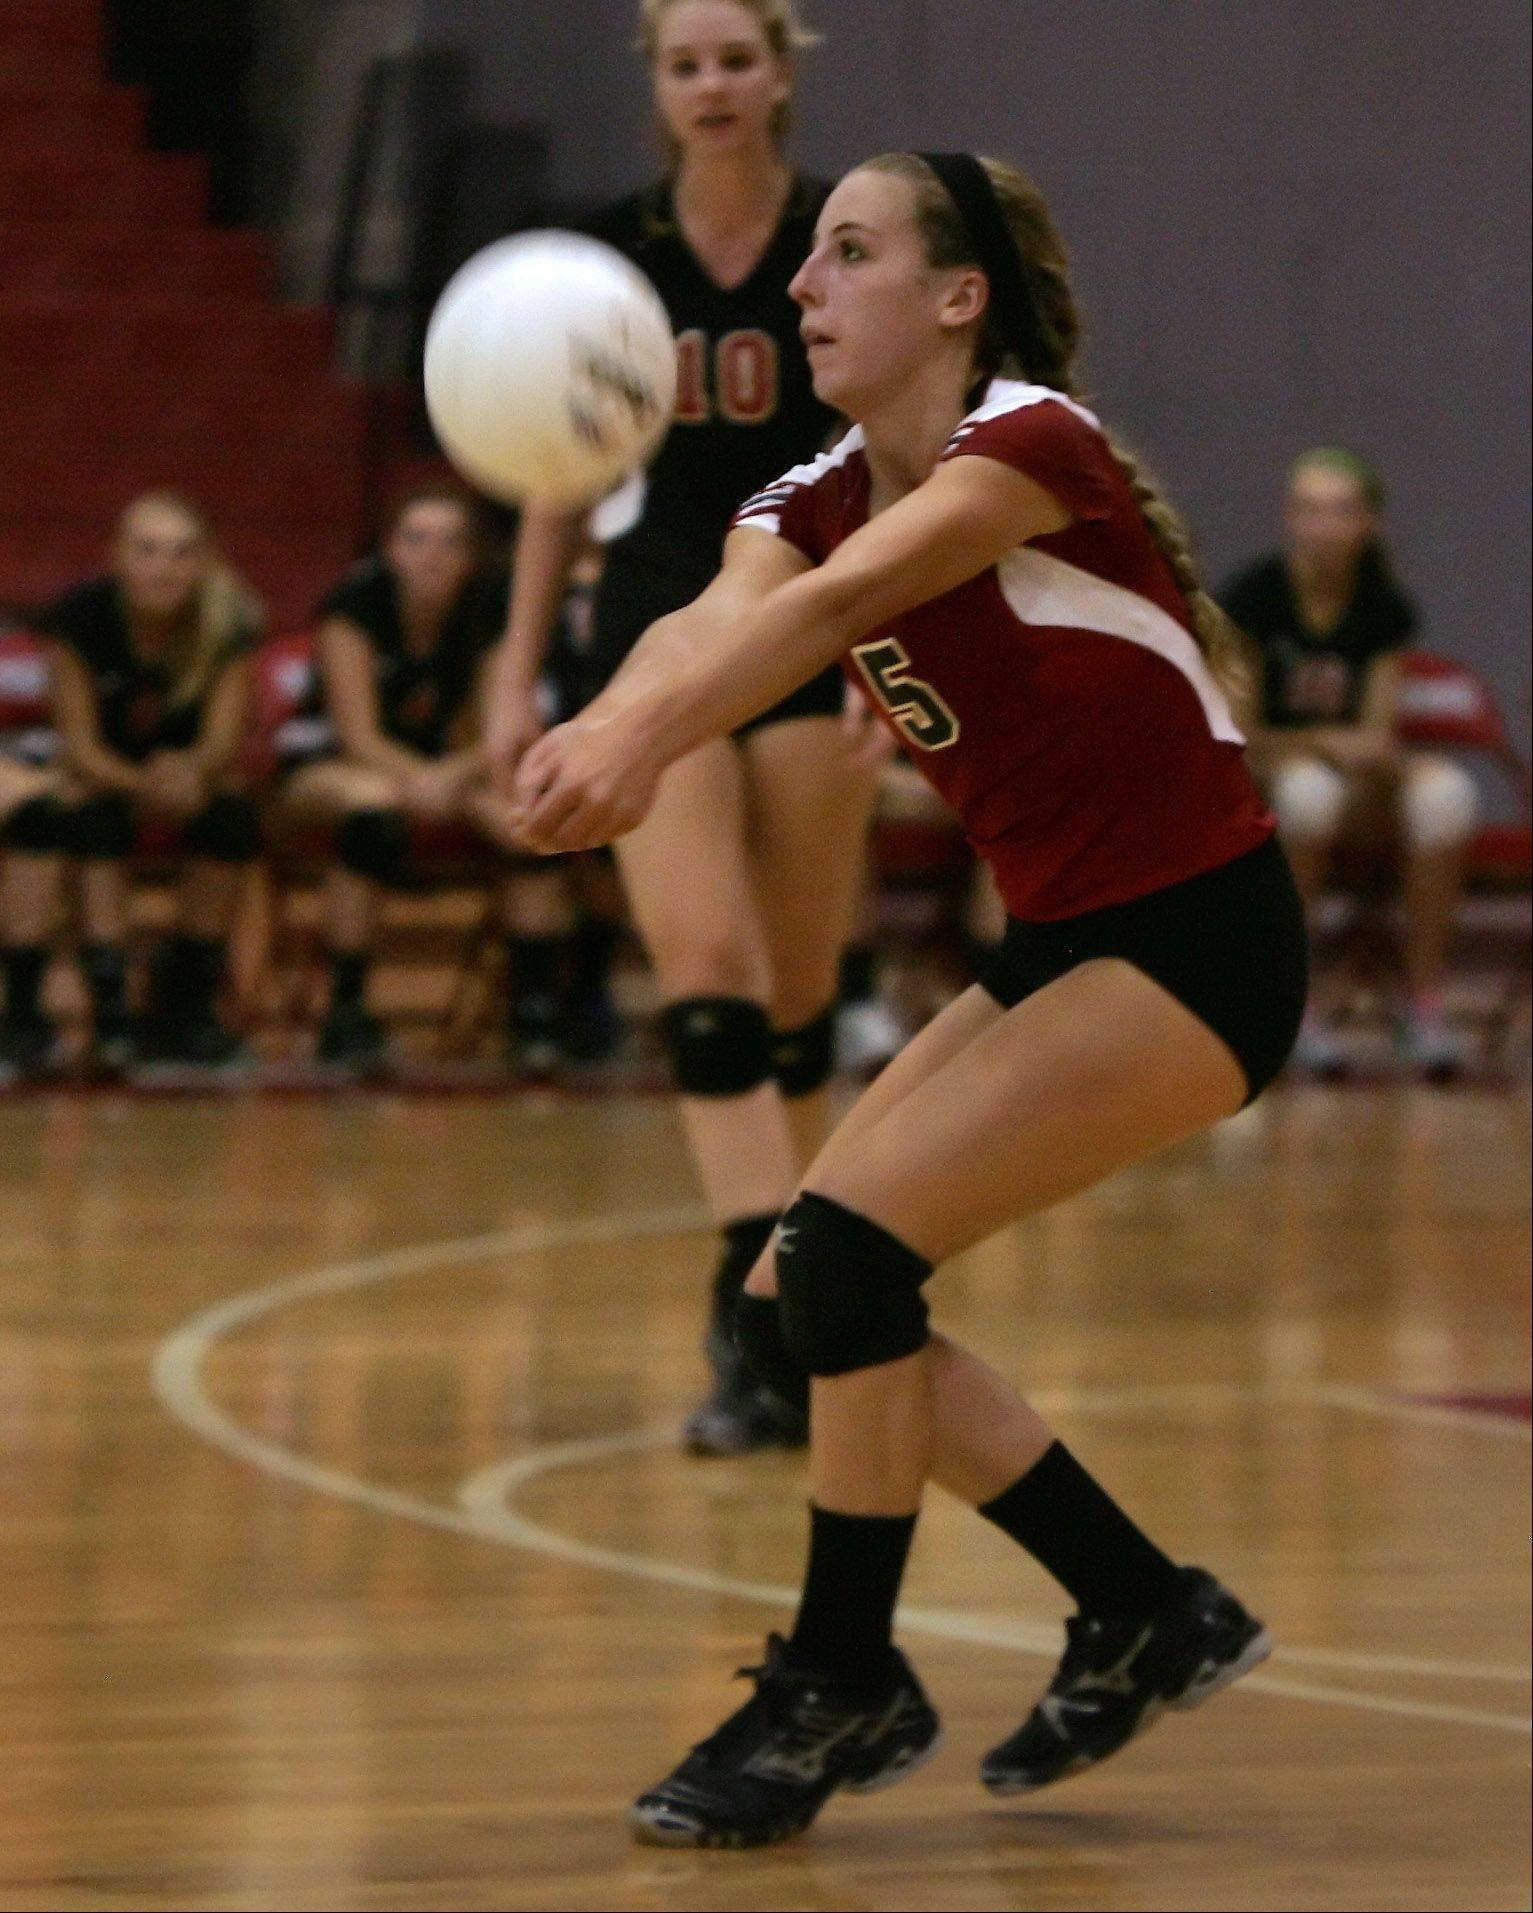 Barrington'S Emily Casaletto returns the ball during Thursday's volleyball match against Palatine in Barrington.